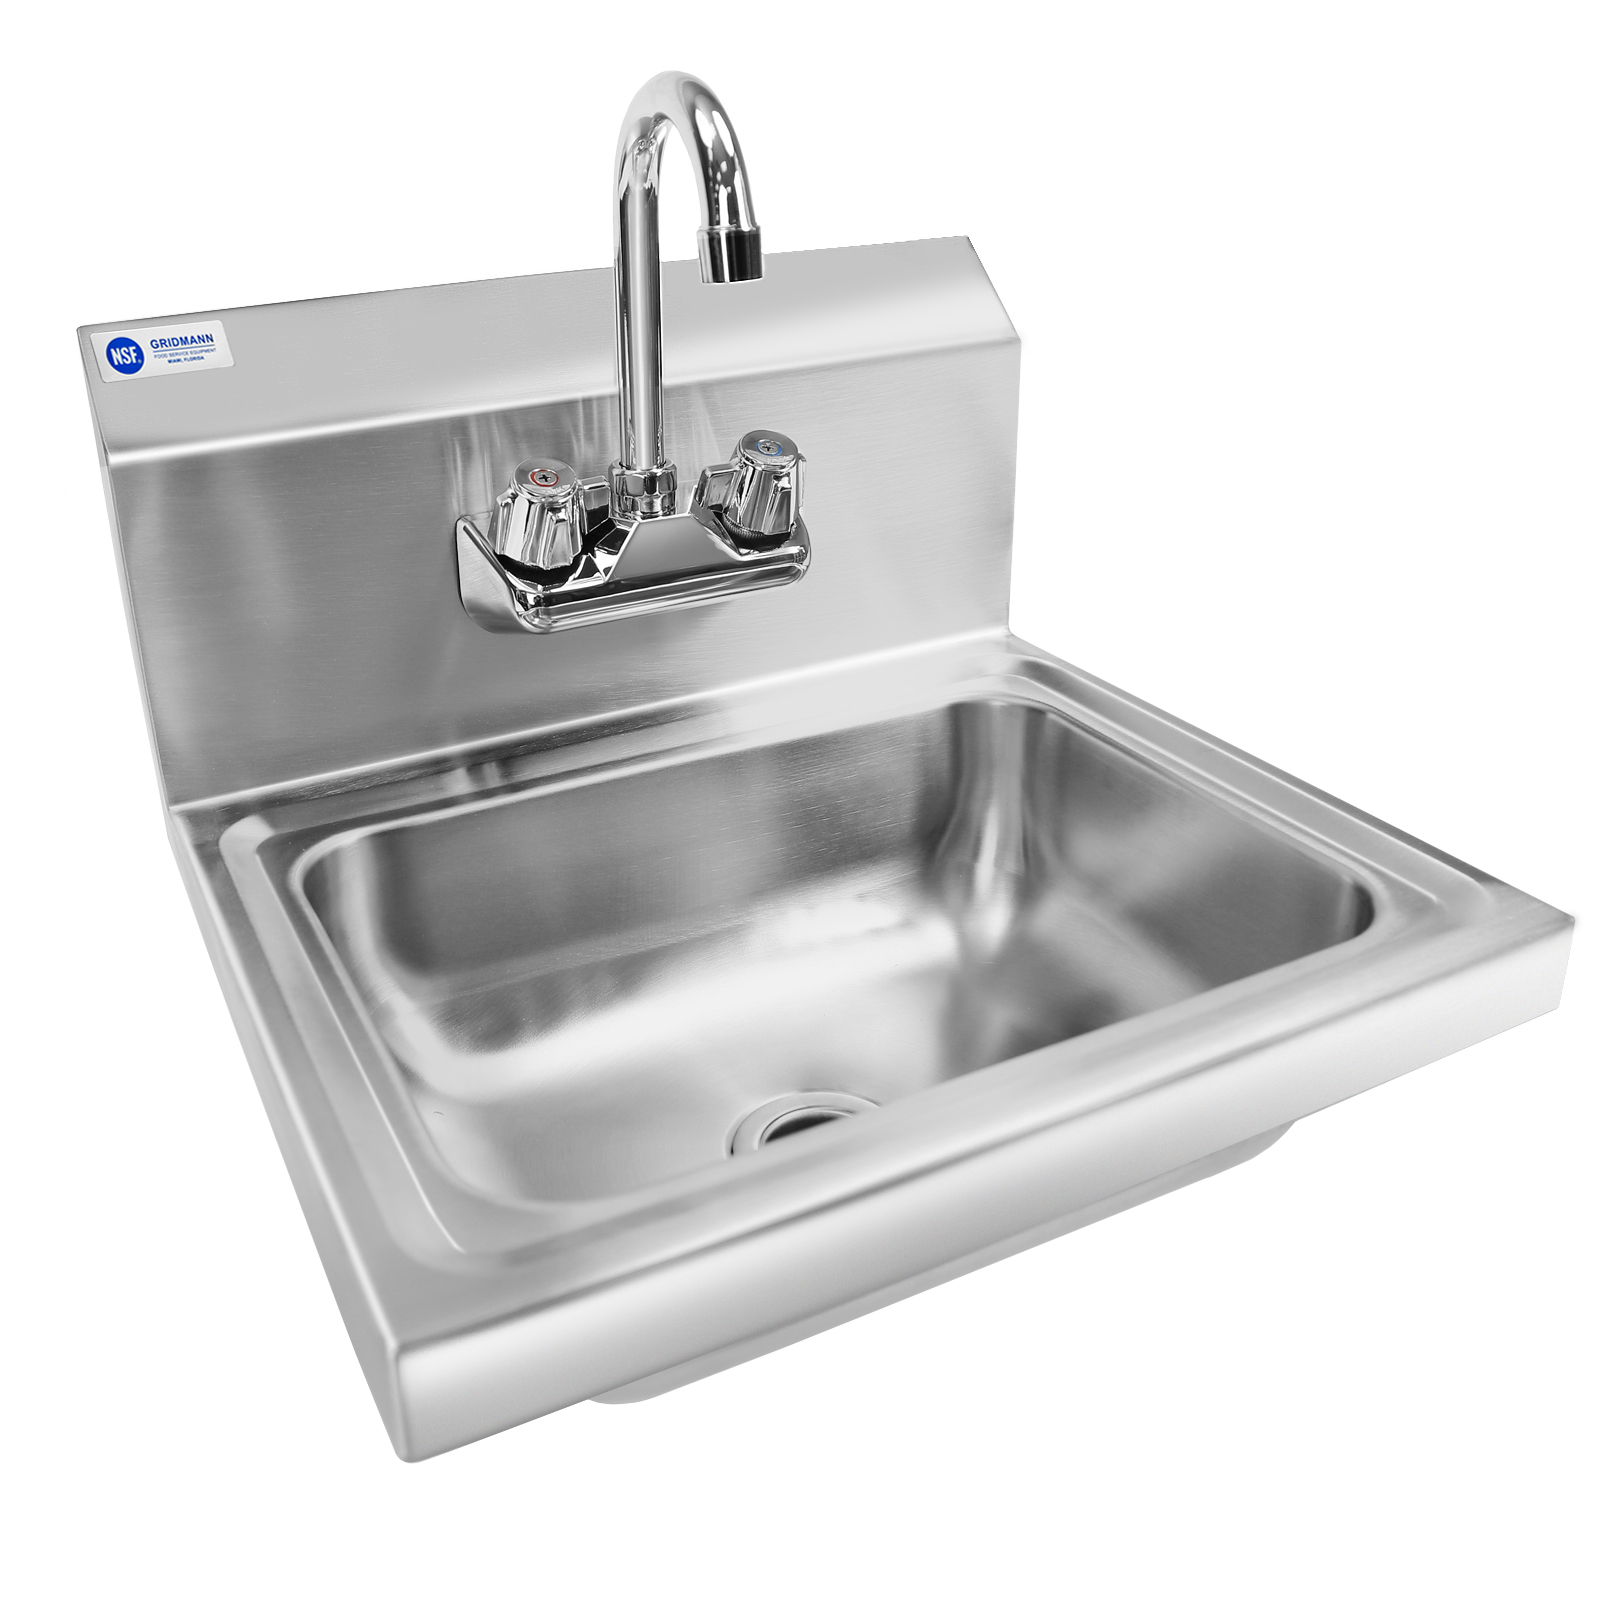 Gridmann Commercial Nsf Stainless Steel Sink Wall Mount